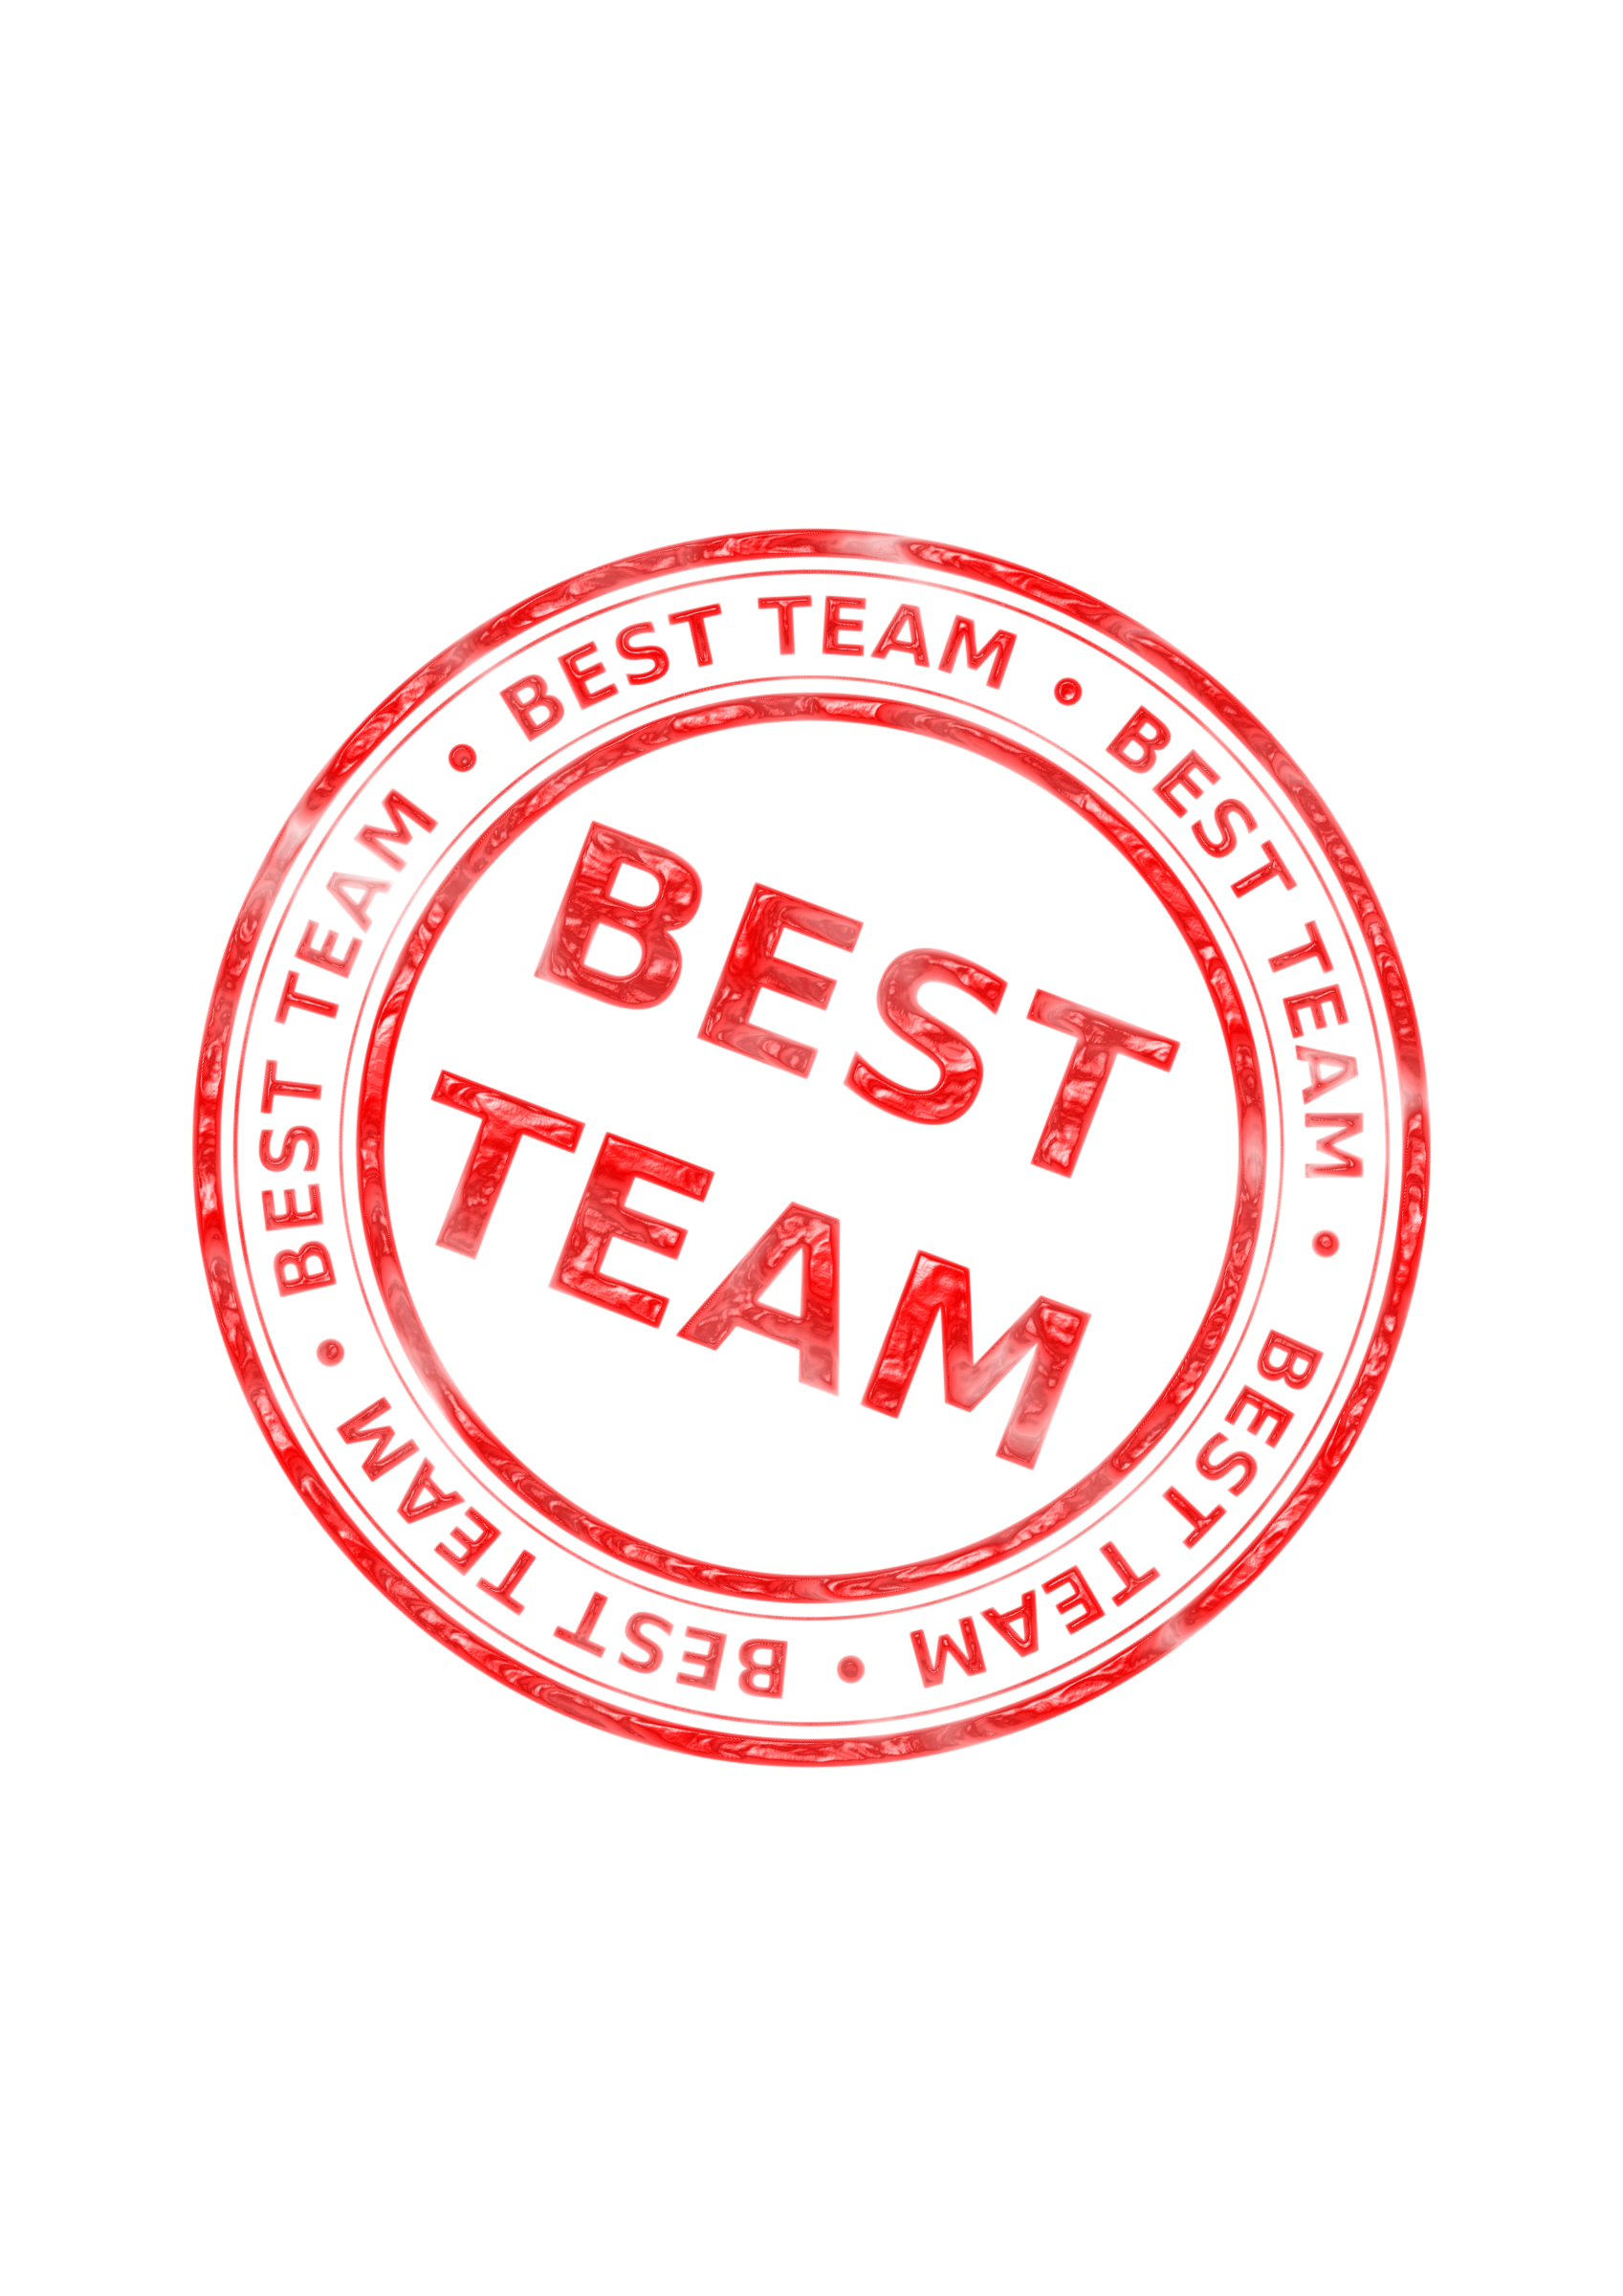 collection of best. Teamwork clipart medical